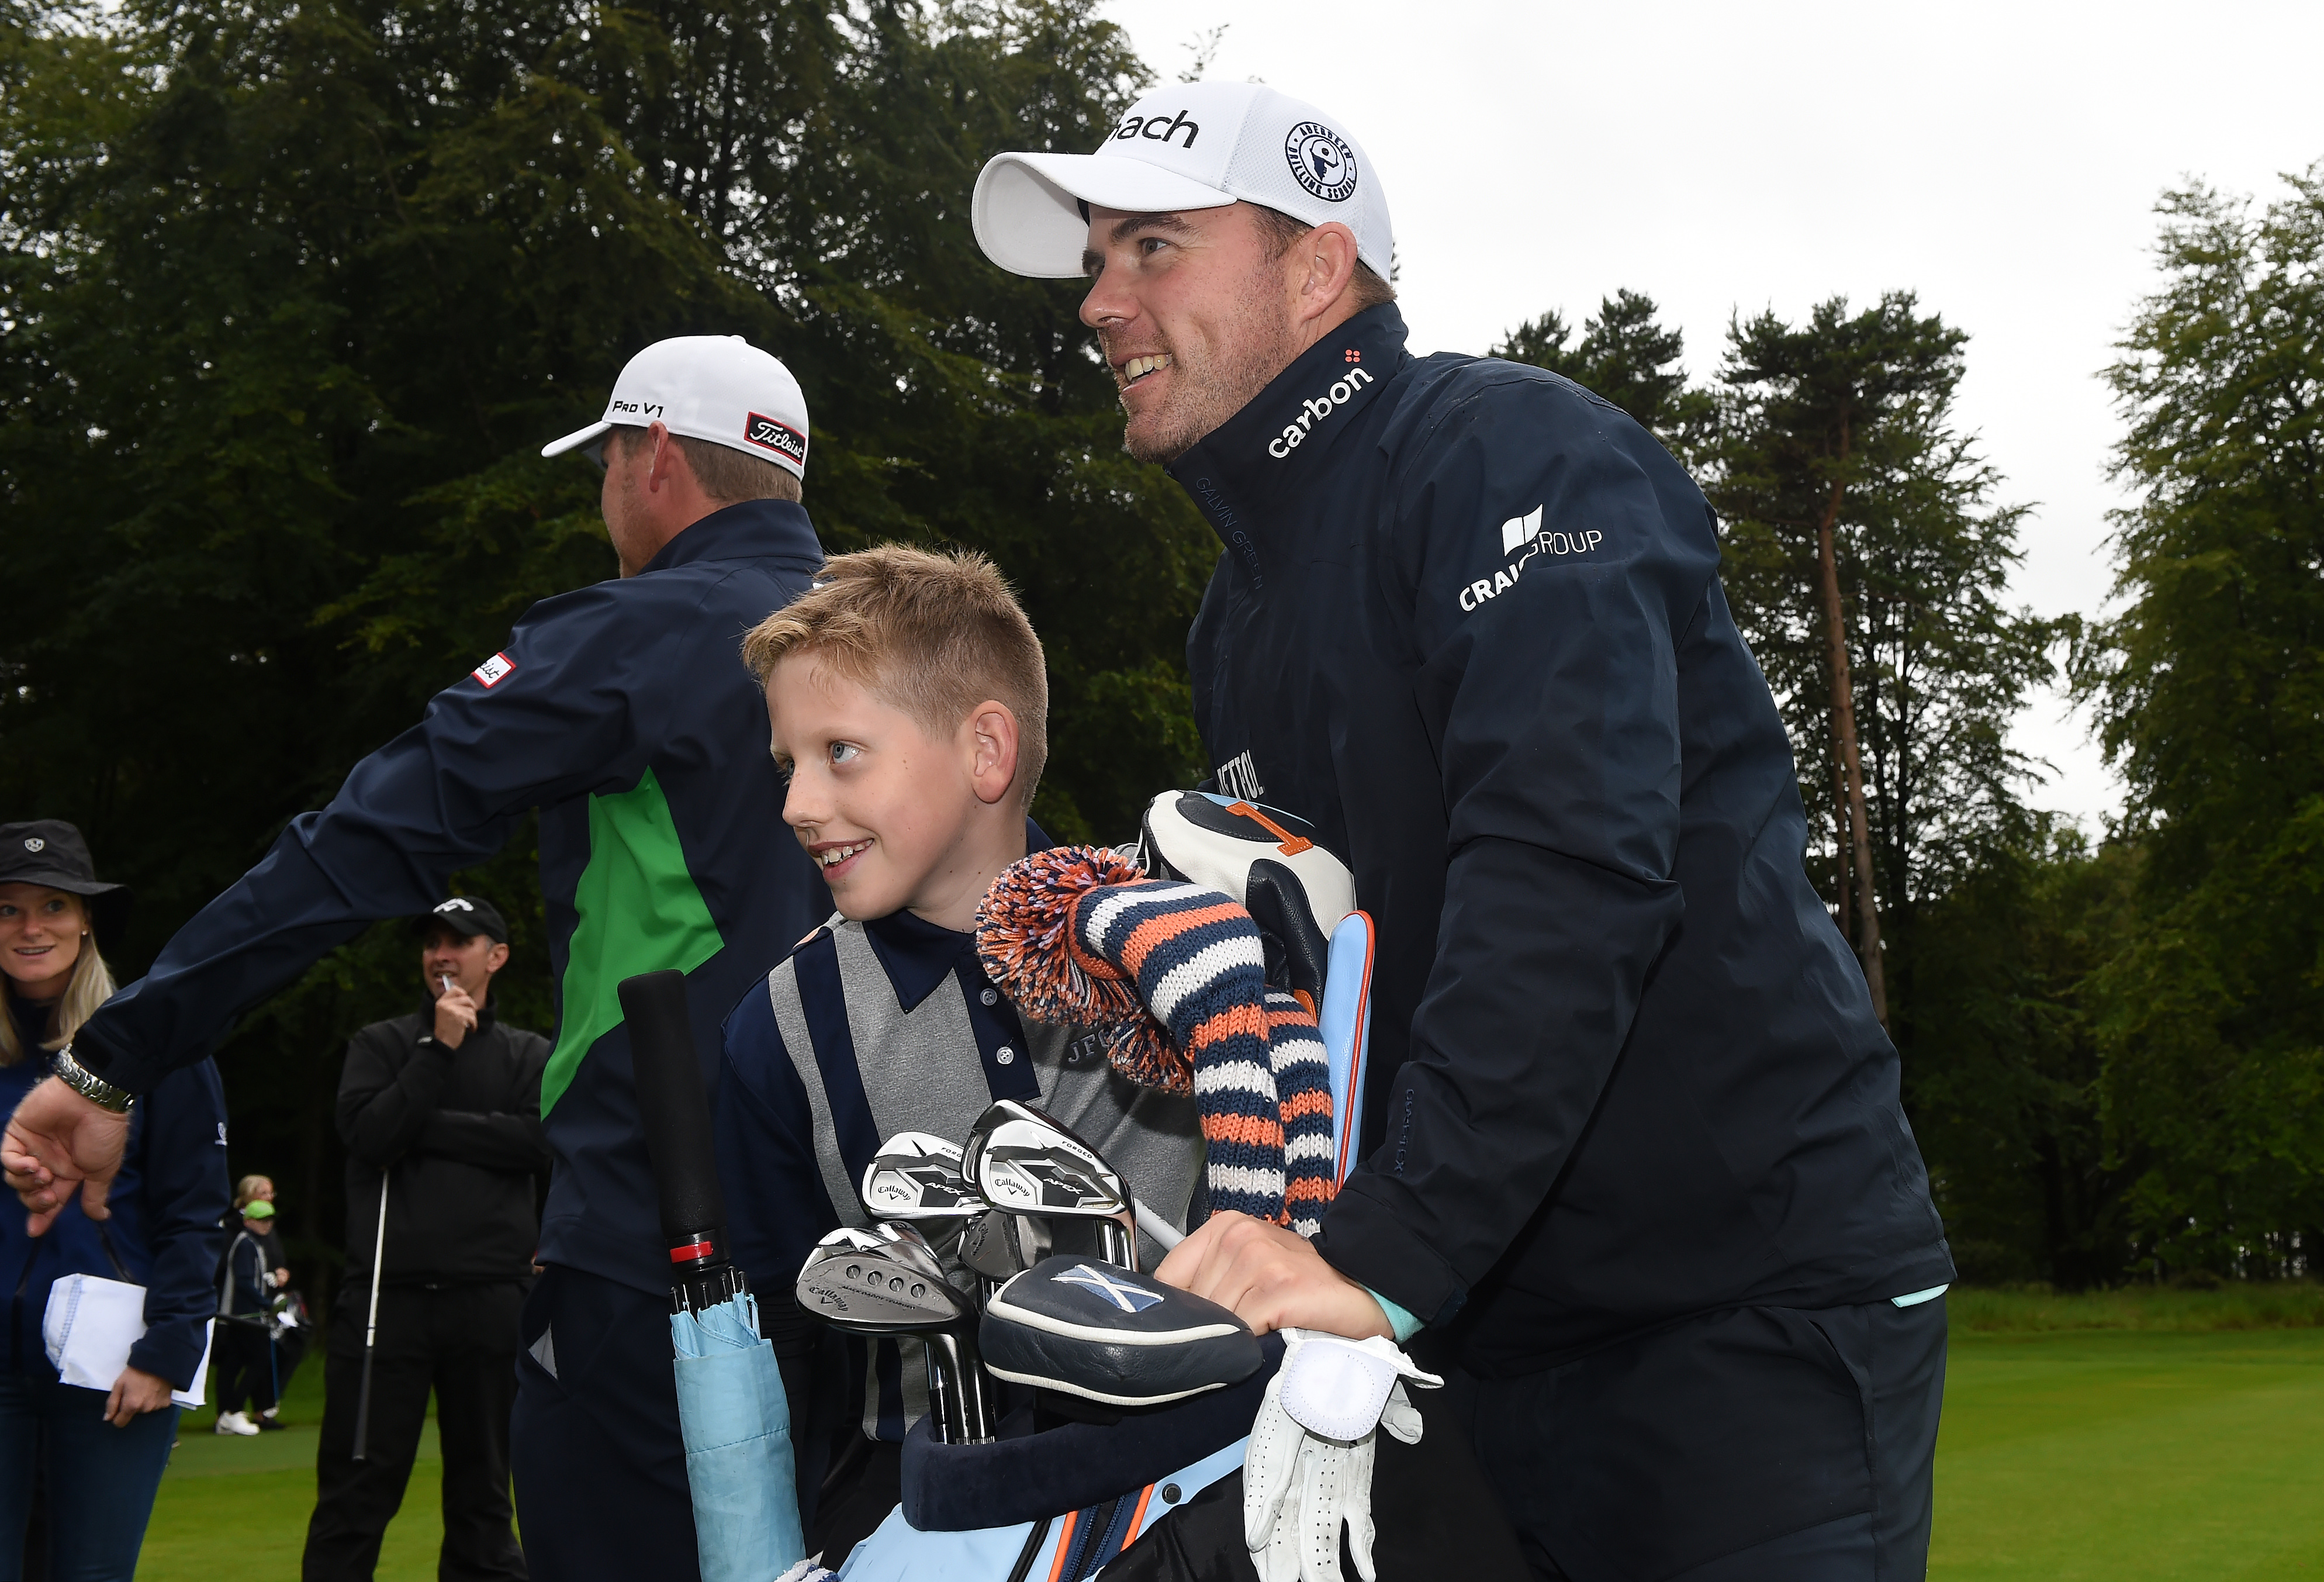 Richie Ramsay poses with local children during a golf clinic at the Aberdeen Standard Investments Scottish Open at The Renaissance Club.